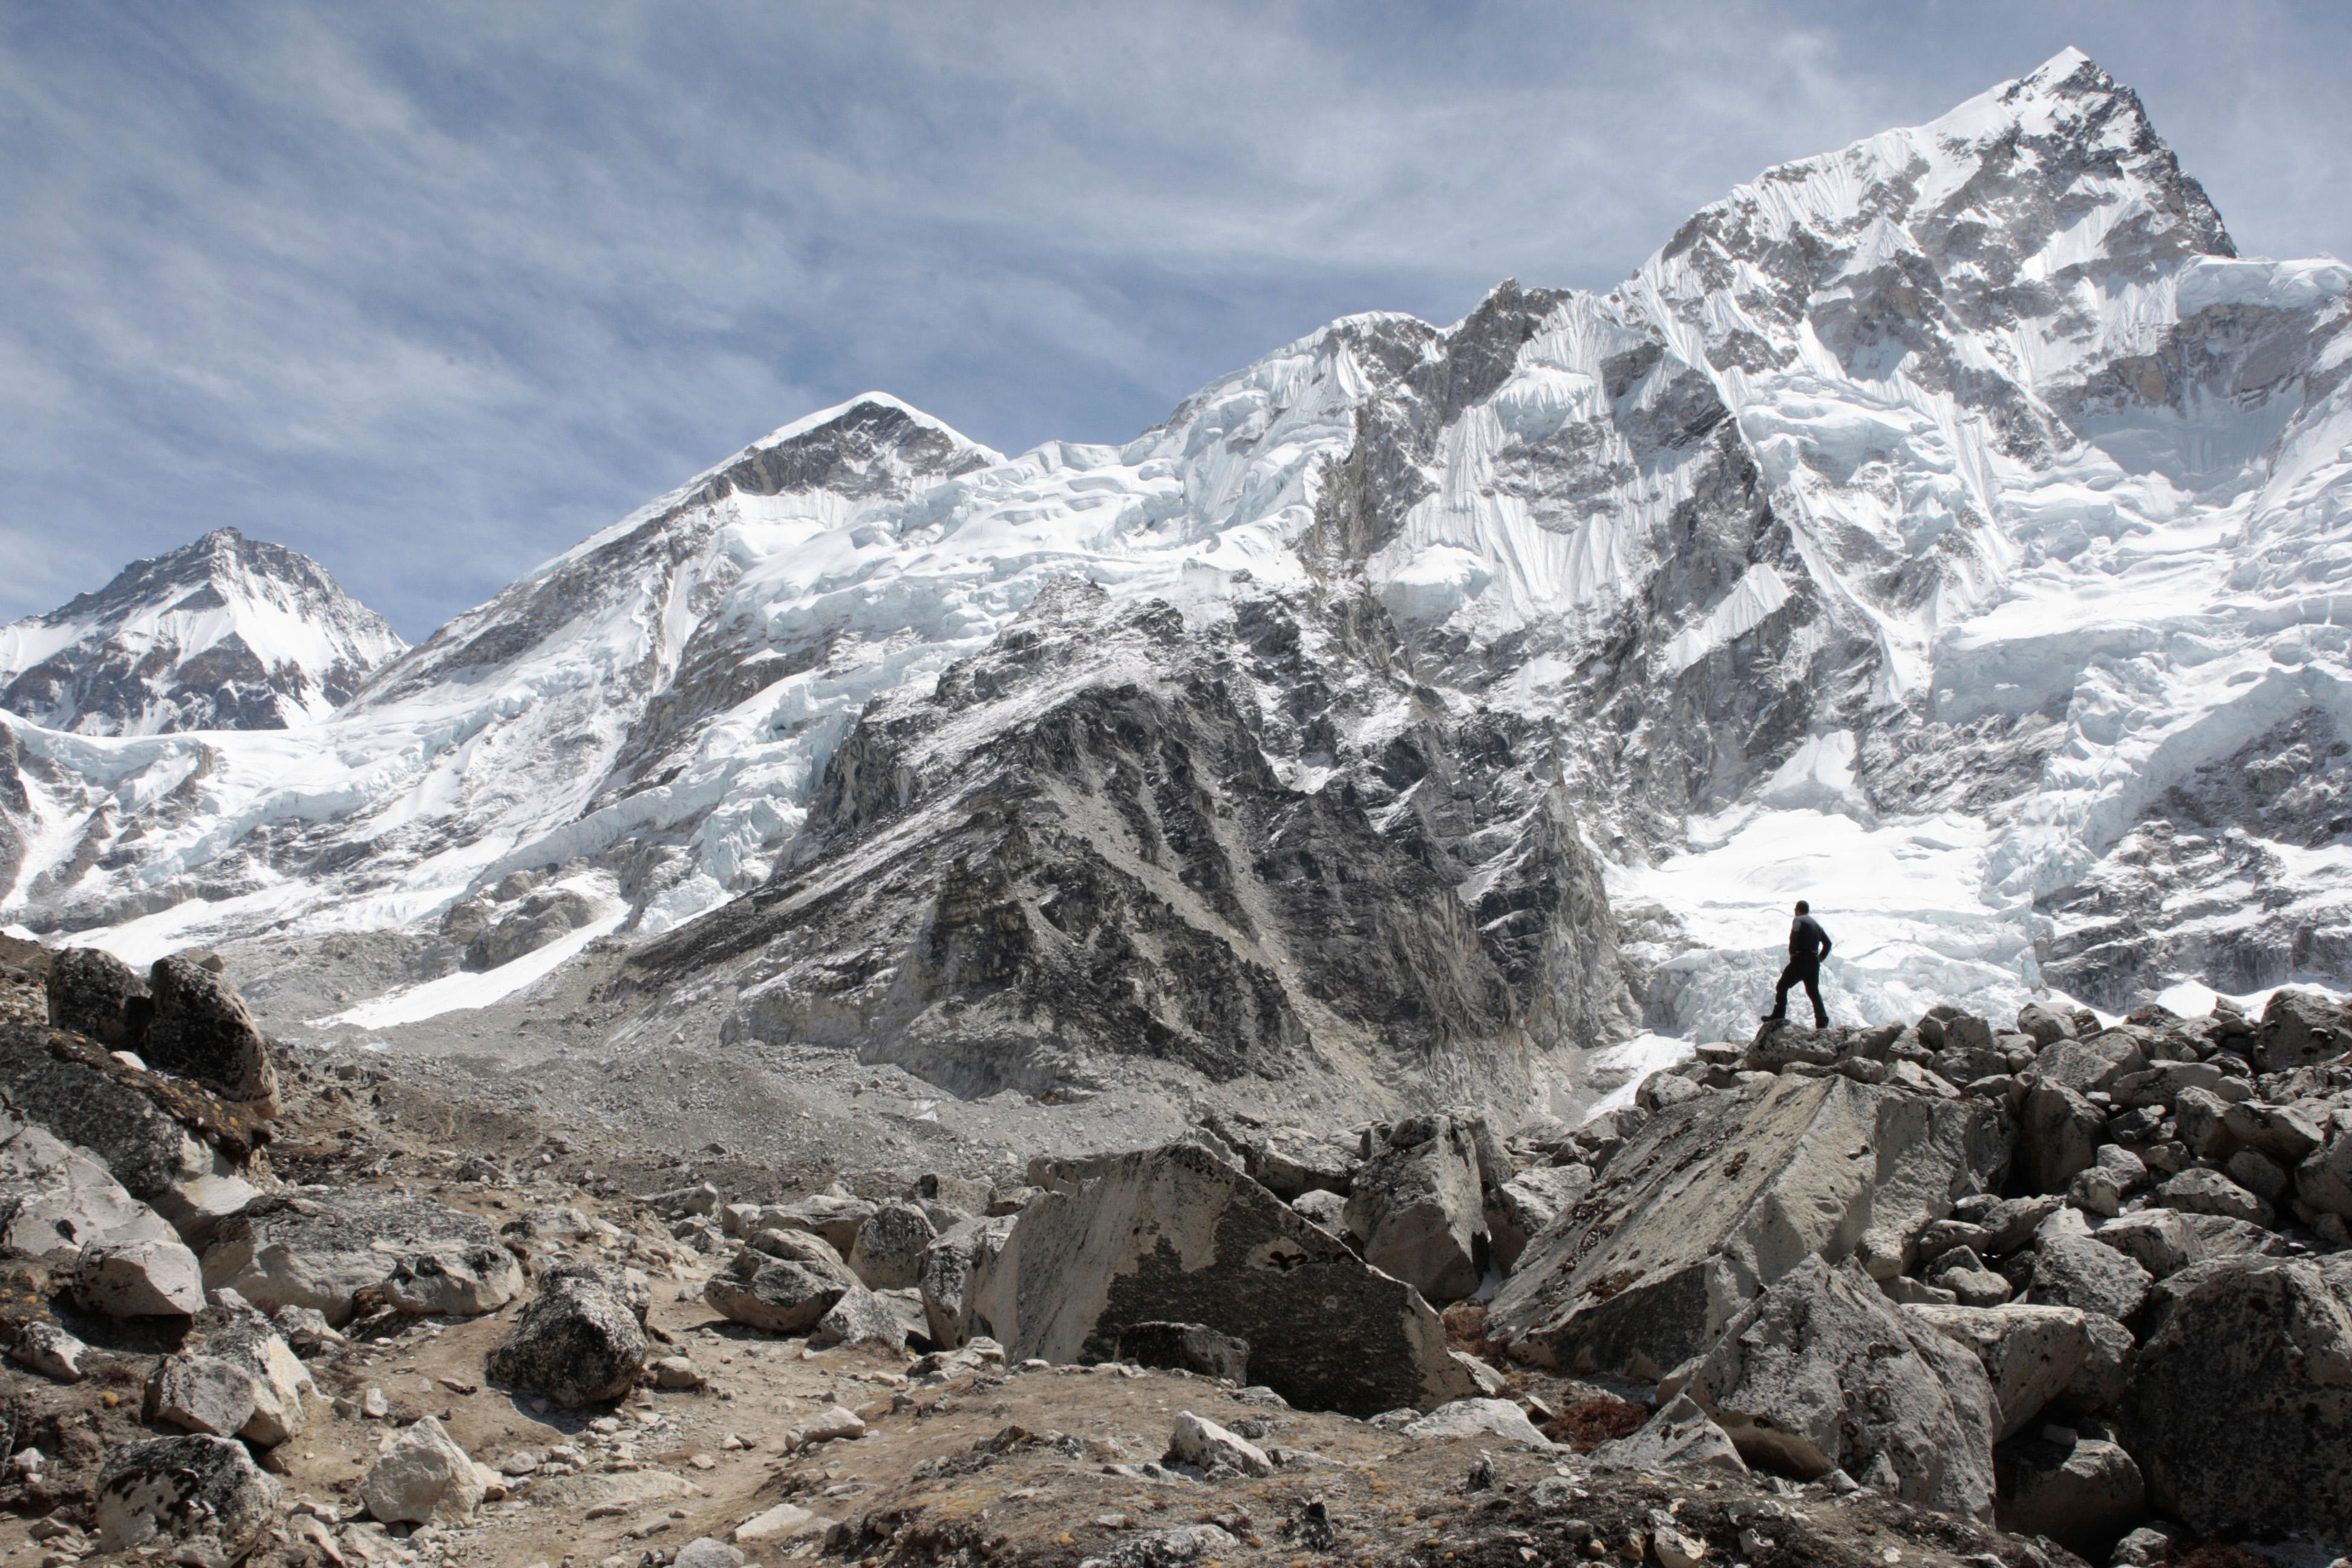 Glacier melt on Everest exposes bodies of dead climbers